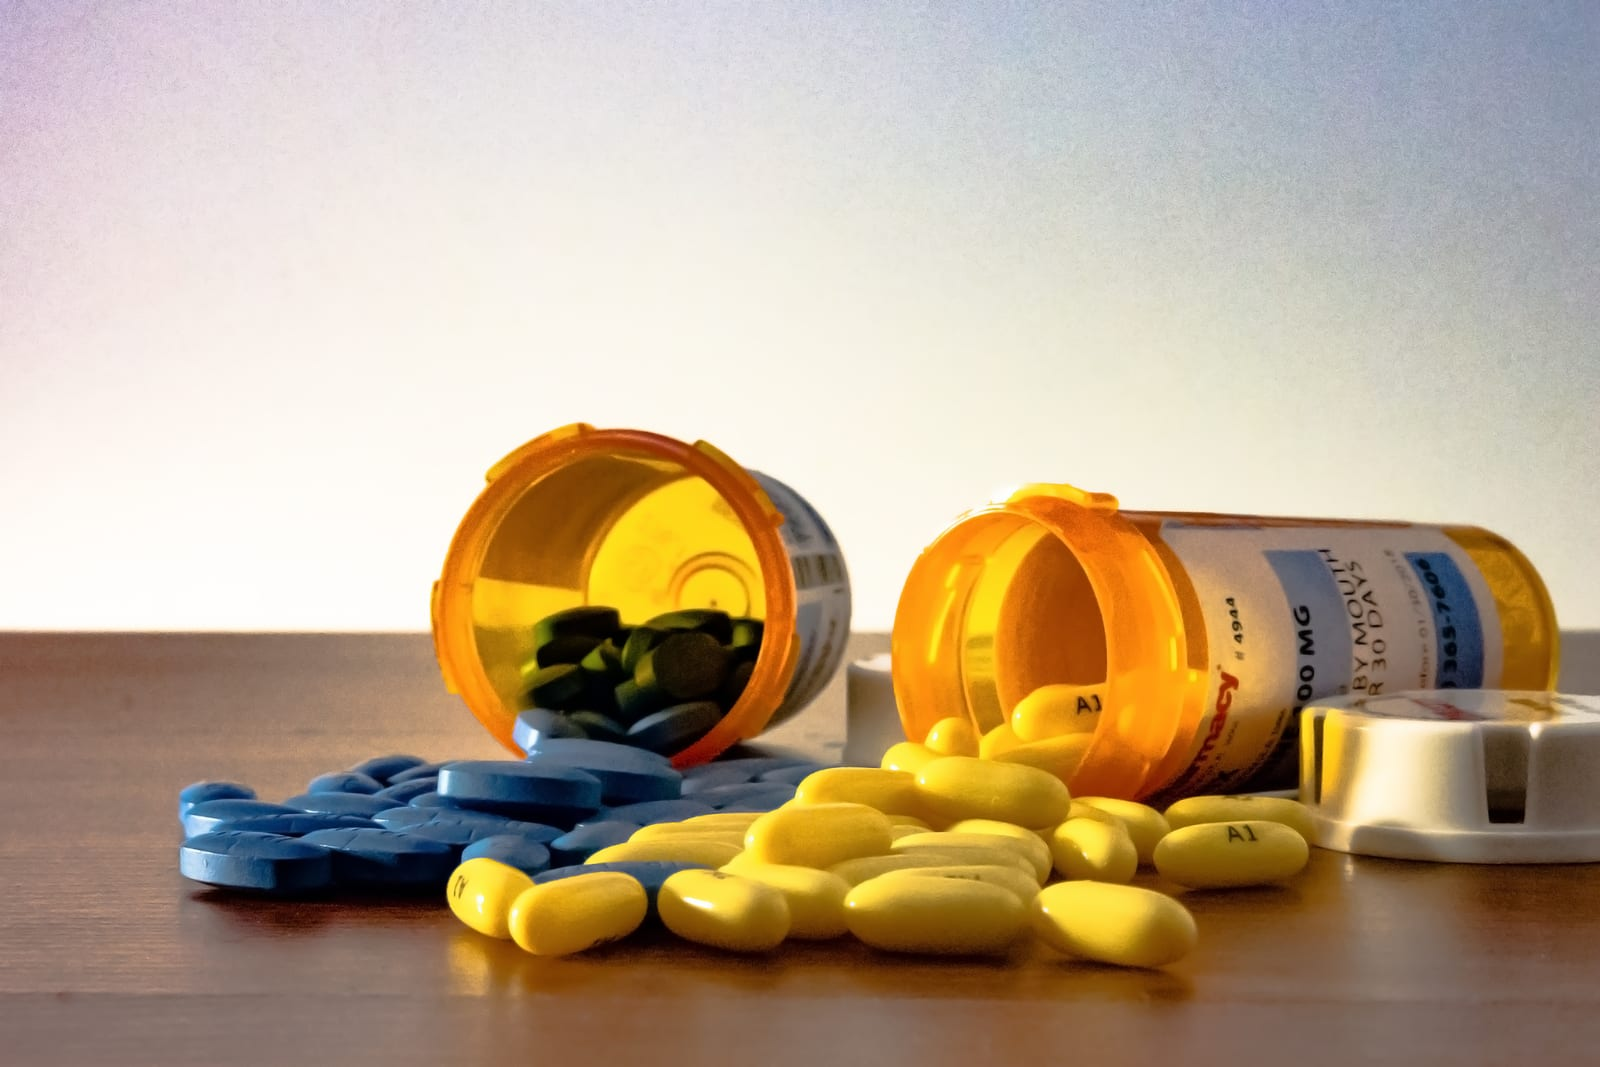 Business News: Report Sheds Light on Health Care's 'Hidden' Epidemic, Hospital Drug Diversion, its Role in the Opioid Crisis